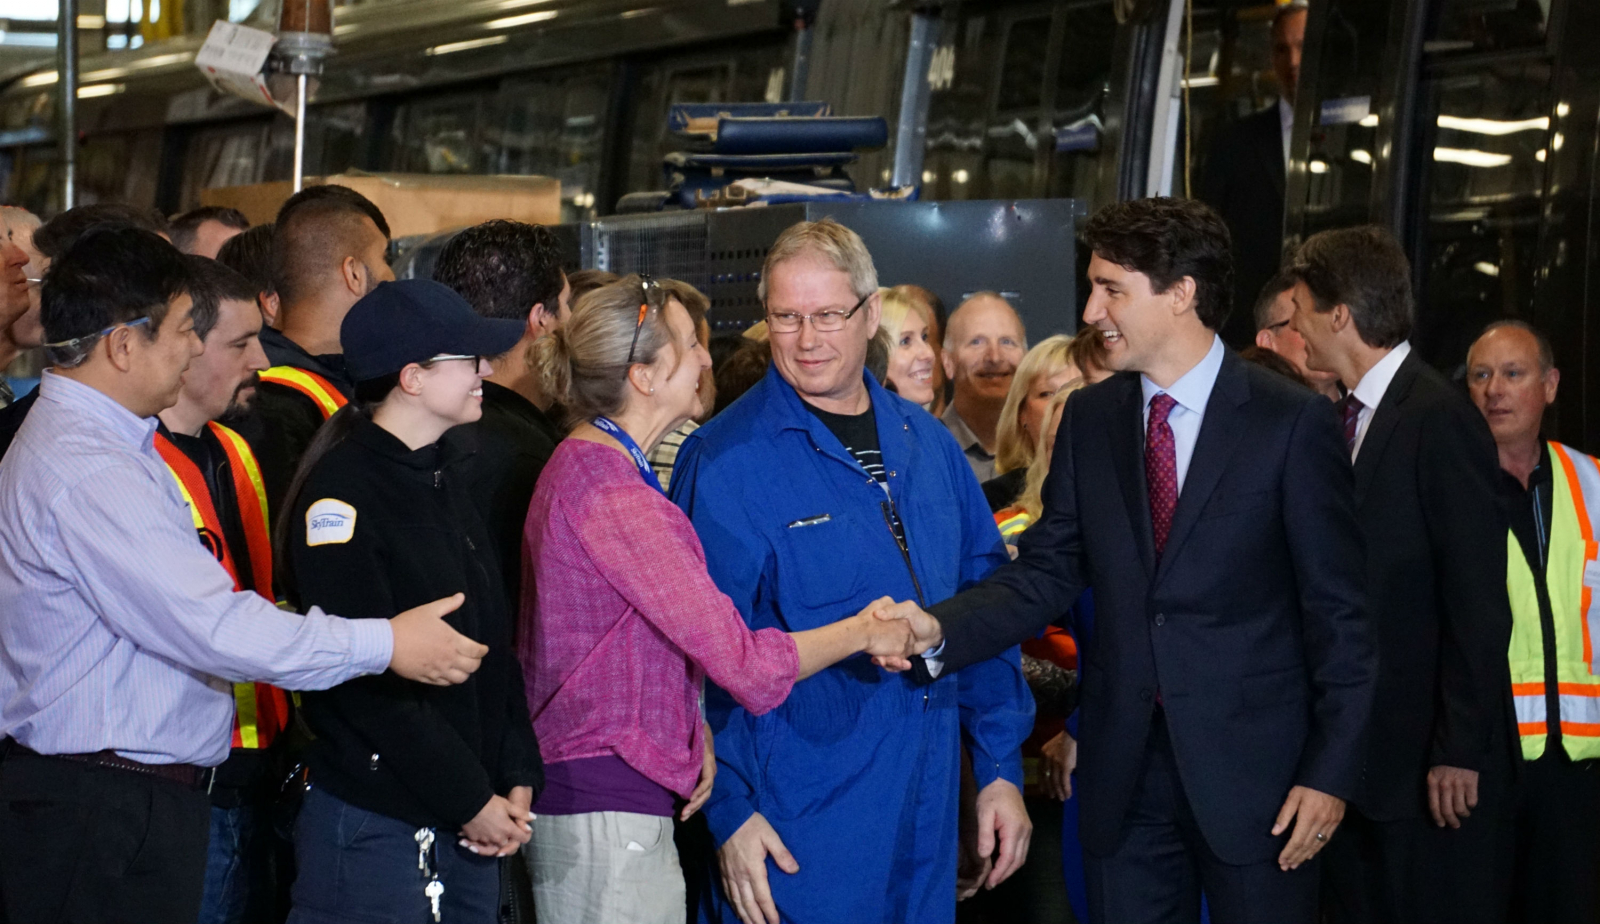 Justin Trudeau, Prime Minister, TransLink, SkyTrain, infrastructure, transit, investment, Vancouver